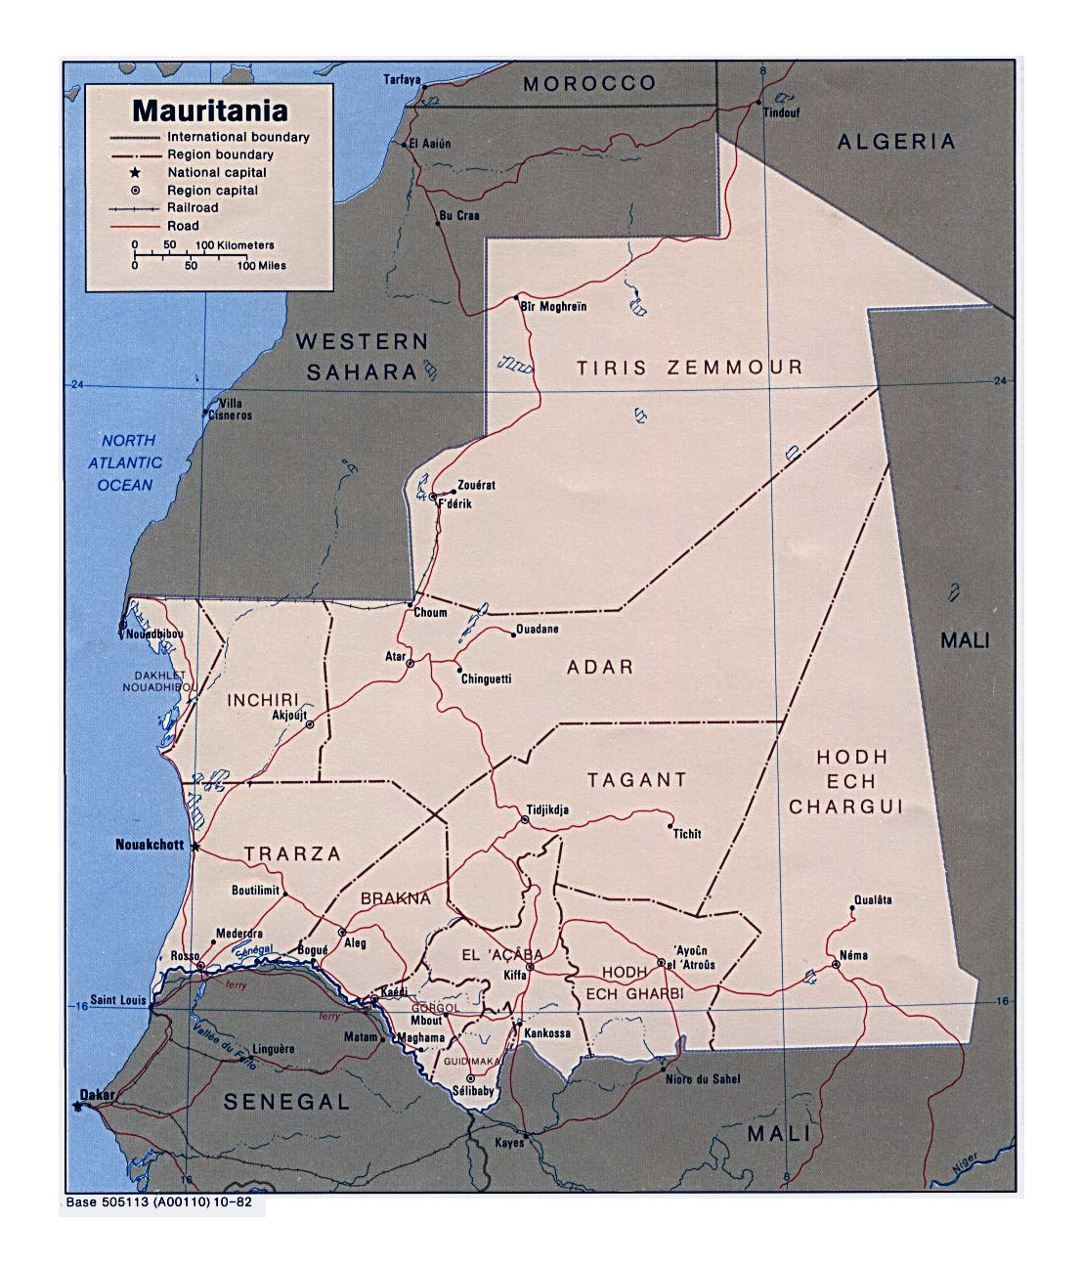 Detailed political and administrative map of Mauritania with roads, railroads and major cities - 1982